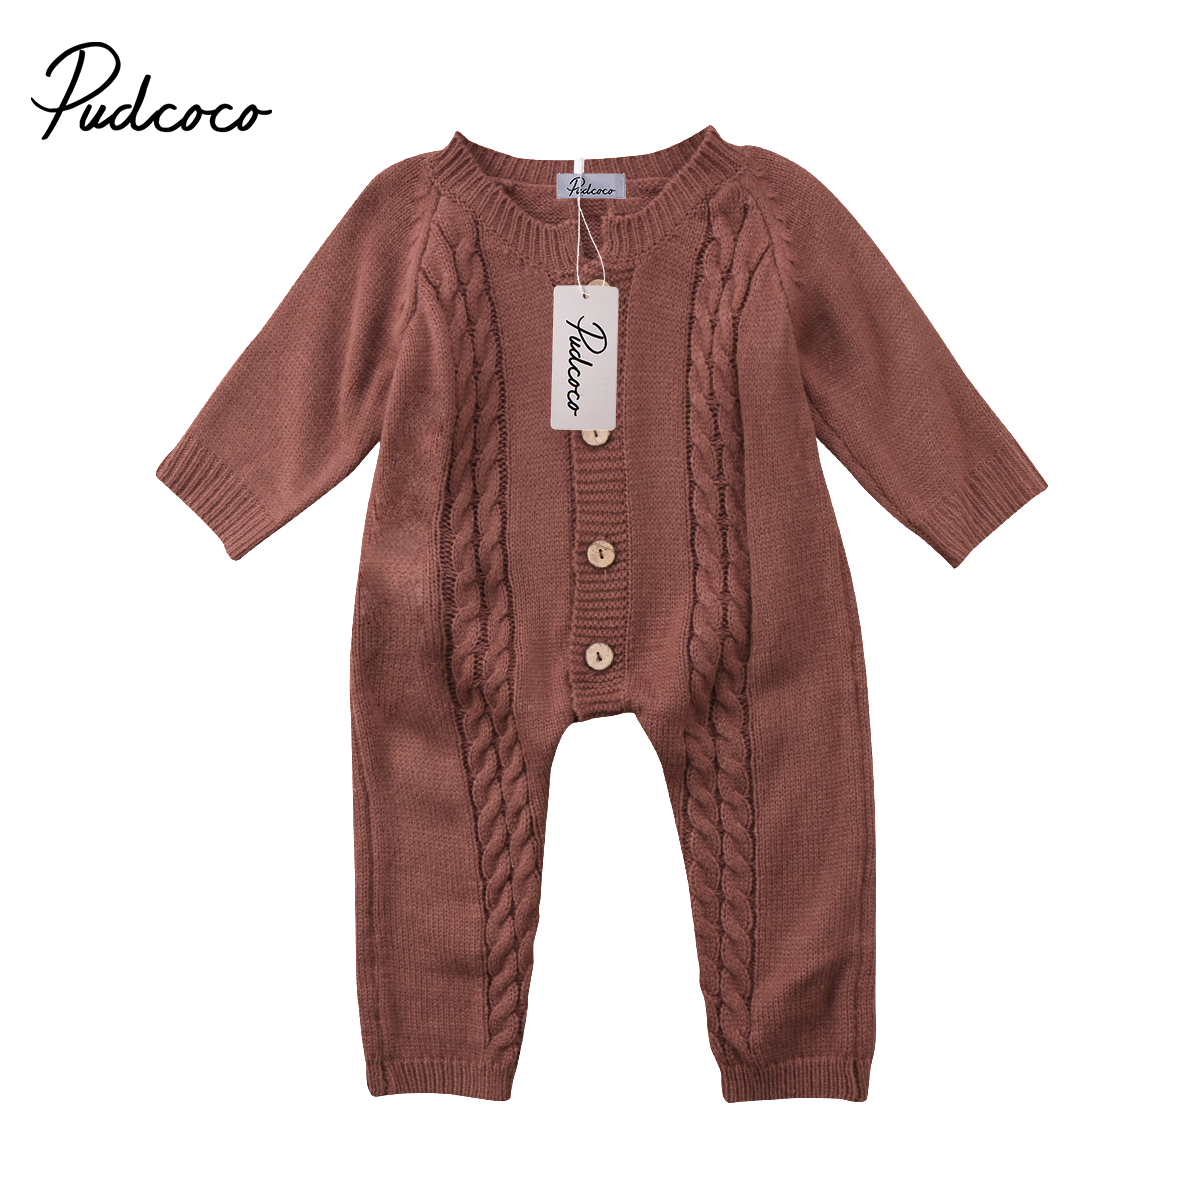 Newborn Kids Infant Baby Boy Girl Romper Jumpsuit Long Sleeve Rompers Warm Clothes Outfits Rompers Brown Green White 0-18M summer newborn infant baby girl romper short sleeve floral romper jumpsuit outfits sunsuit clothes